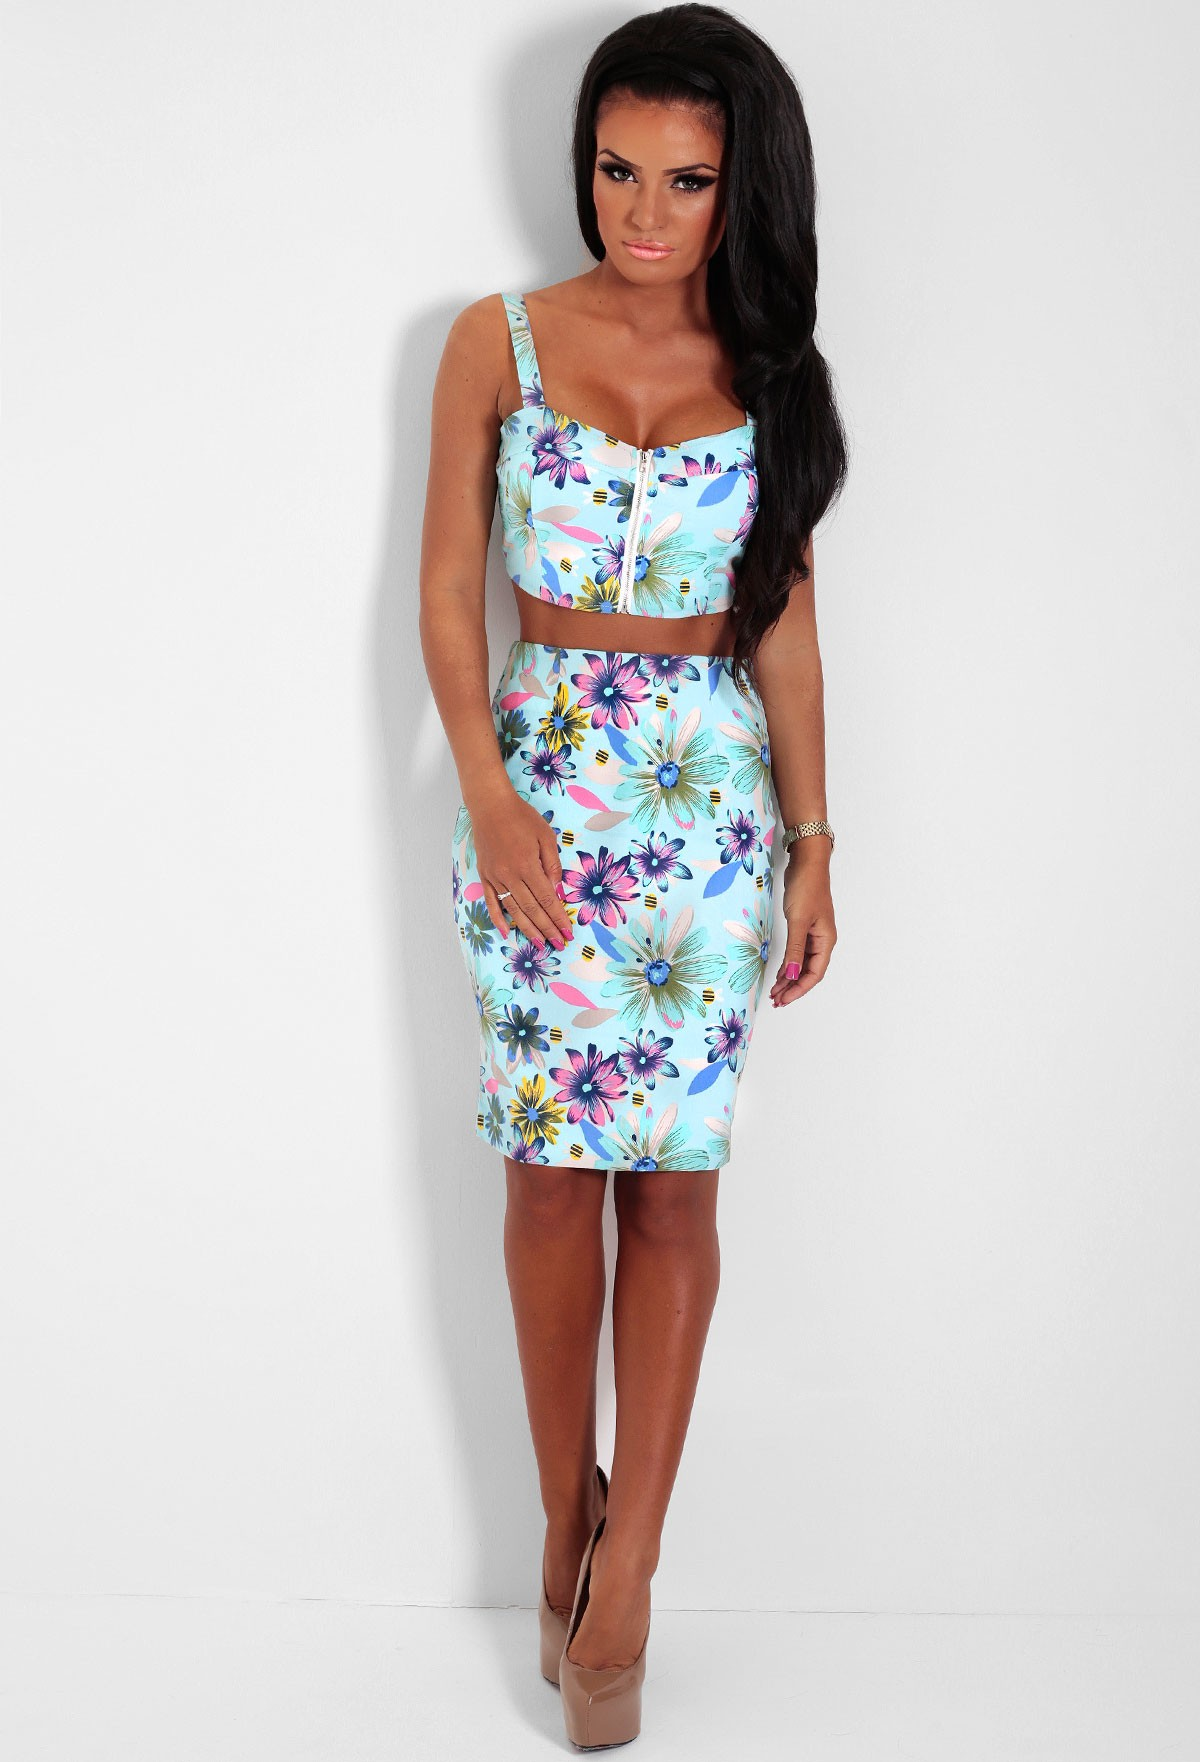 Buzzy Bee Multicolour Floral Print Two Piece Set | Pink Boutique